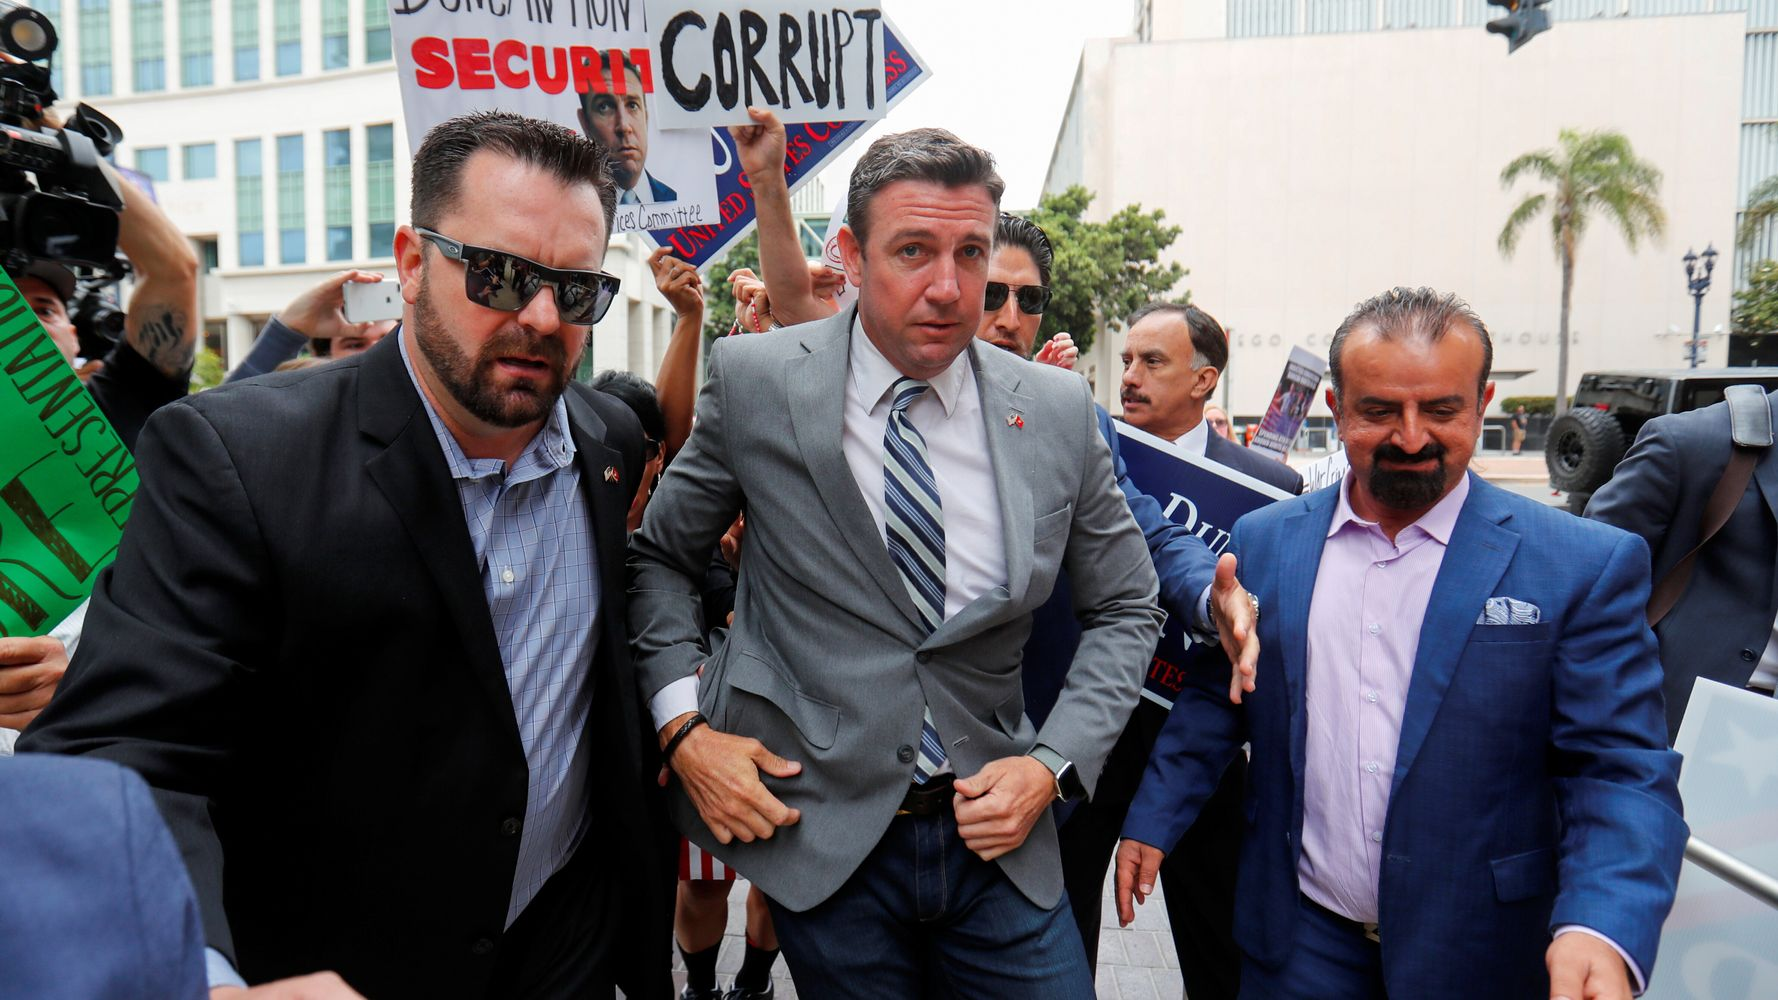 Duncan Hunter To Plead Guilty In Campaign Finance Case He Called 'Witch Hunt'